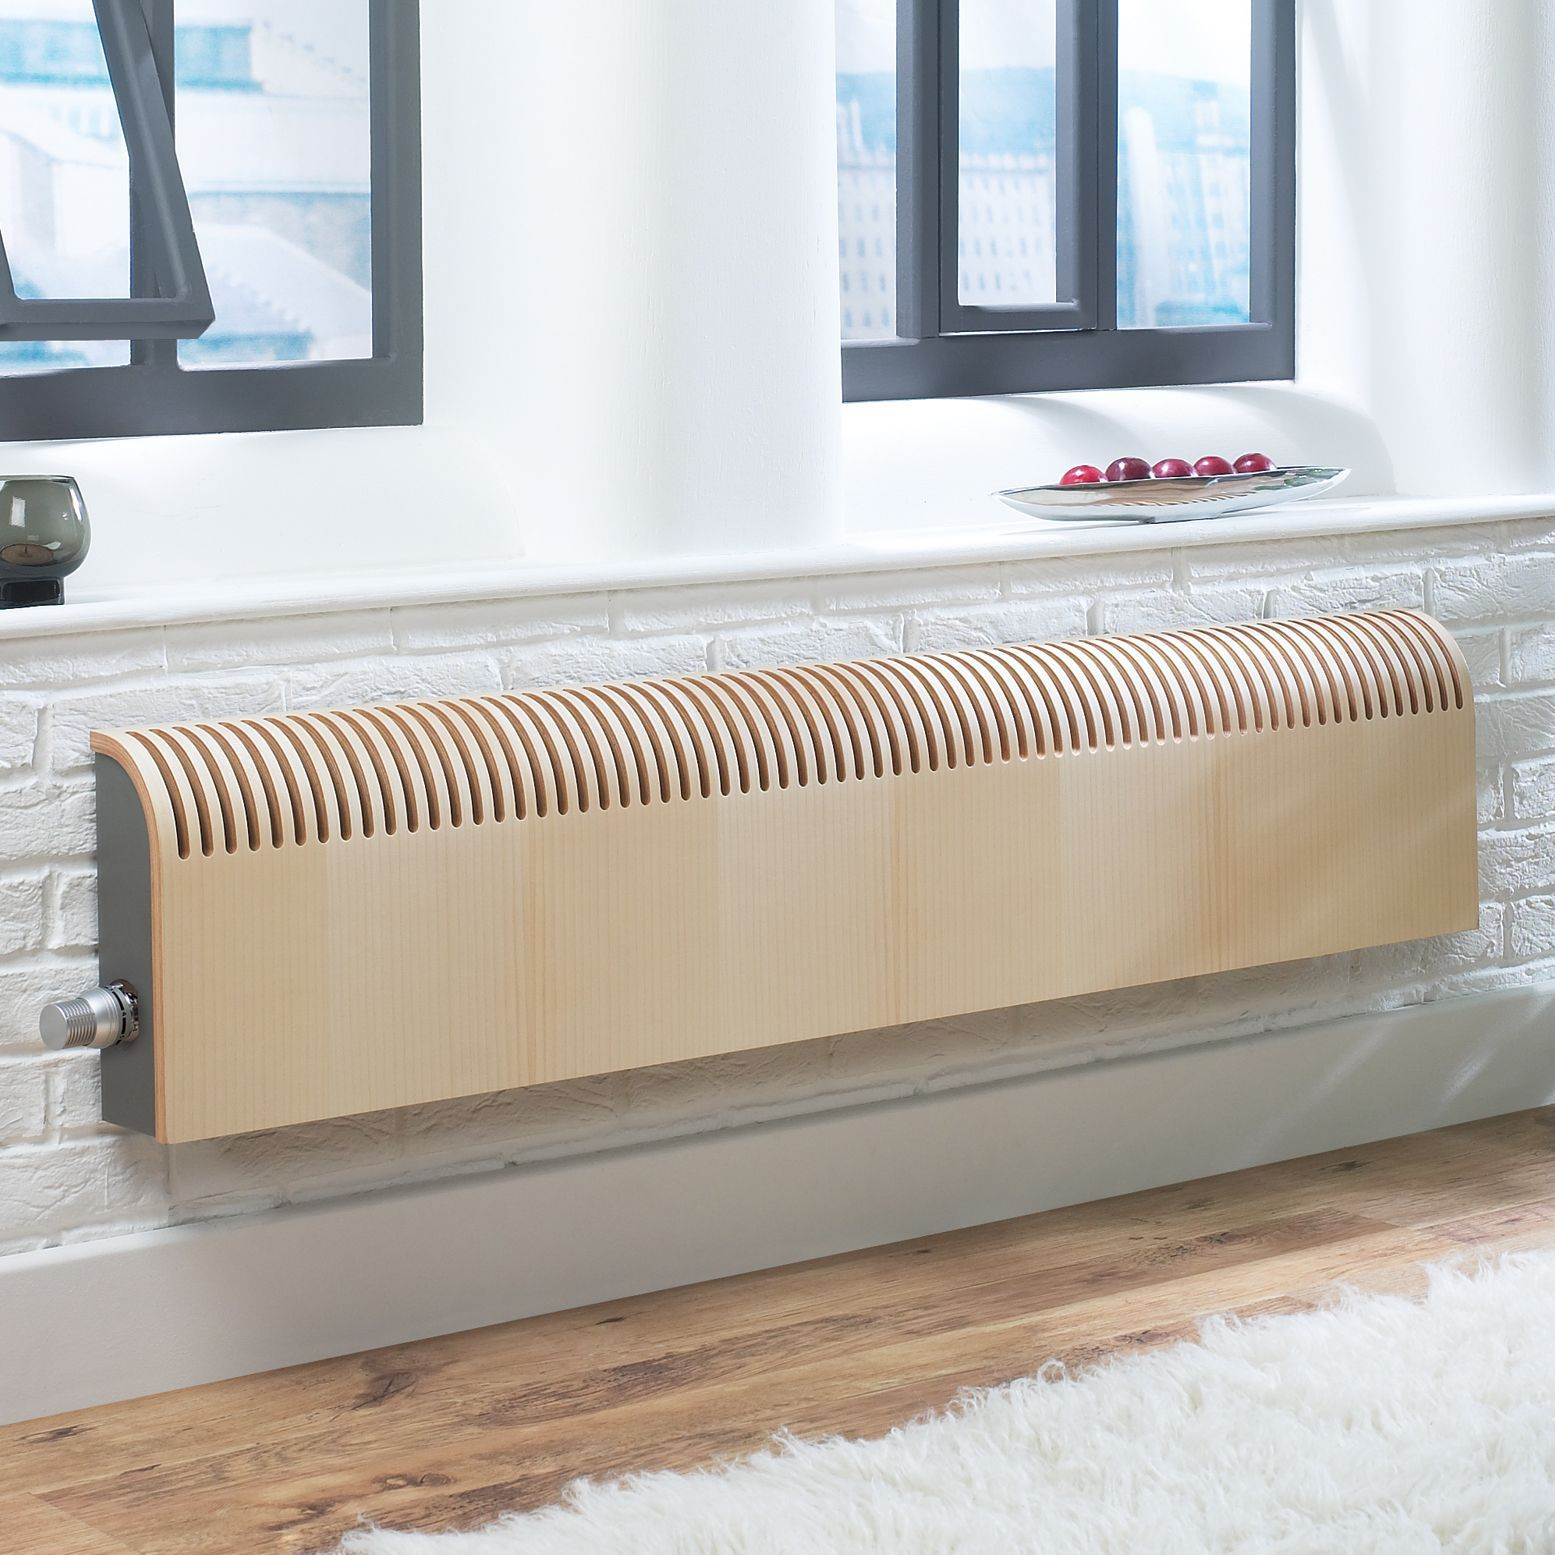 Jaga Knockonwood Horizontal Wooden cased radiator Maple veneer